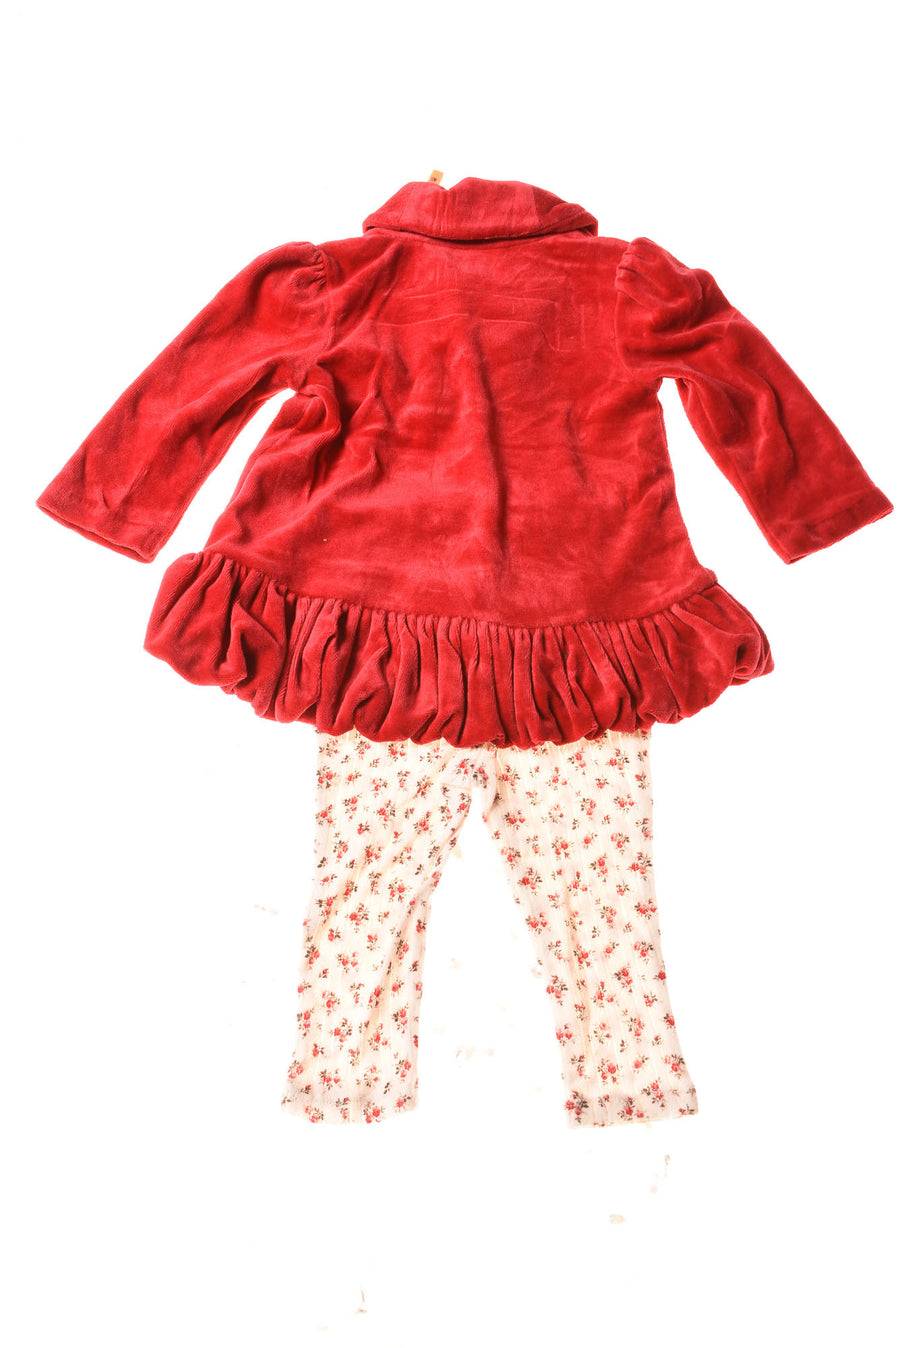 USED Ralph Lauren Baby Girl's Outfit 12 Months Red & Floral Print